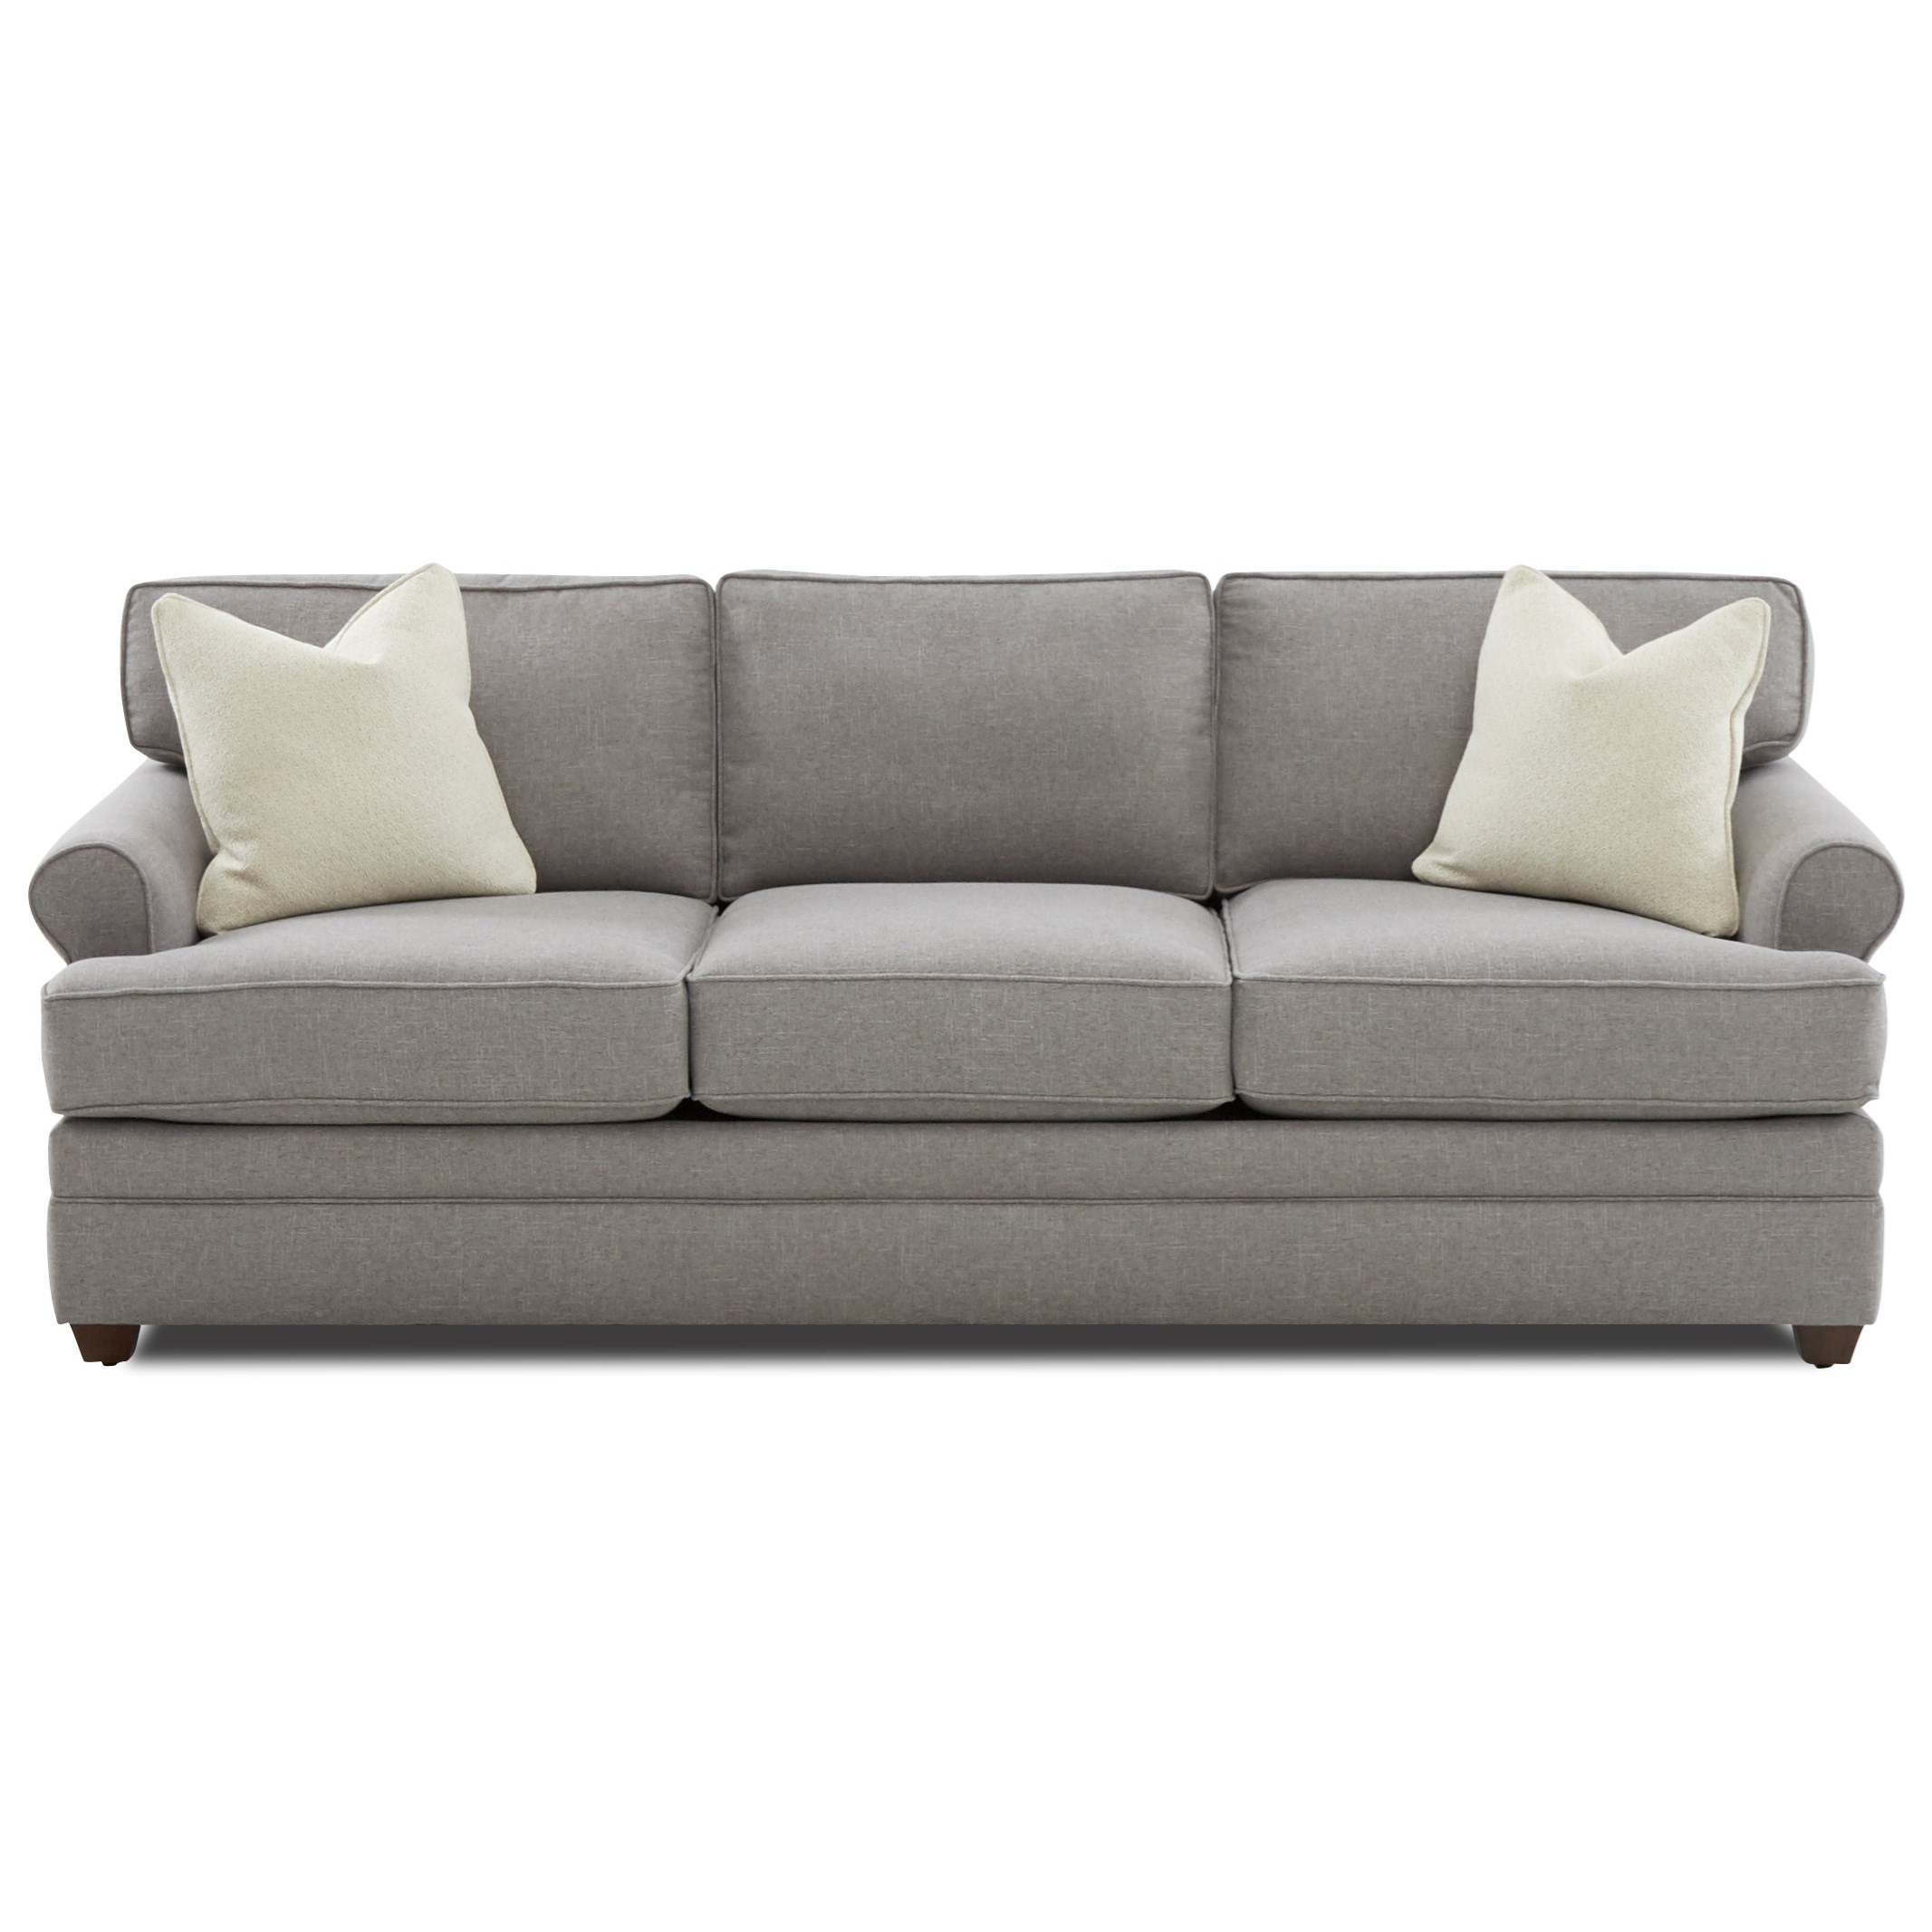 Living Your Way Innerspring Sofa Sleeper by Klaussner at Johnny Janosik